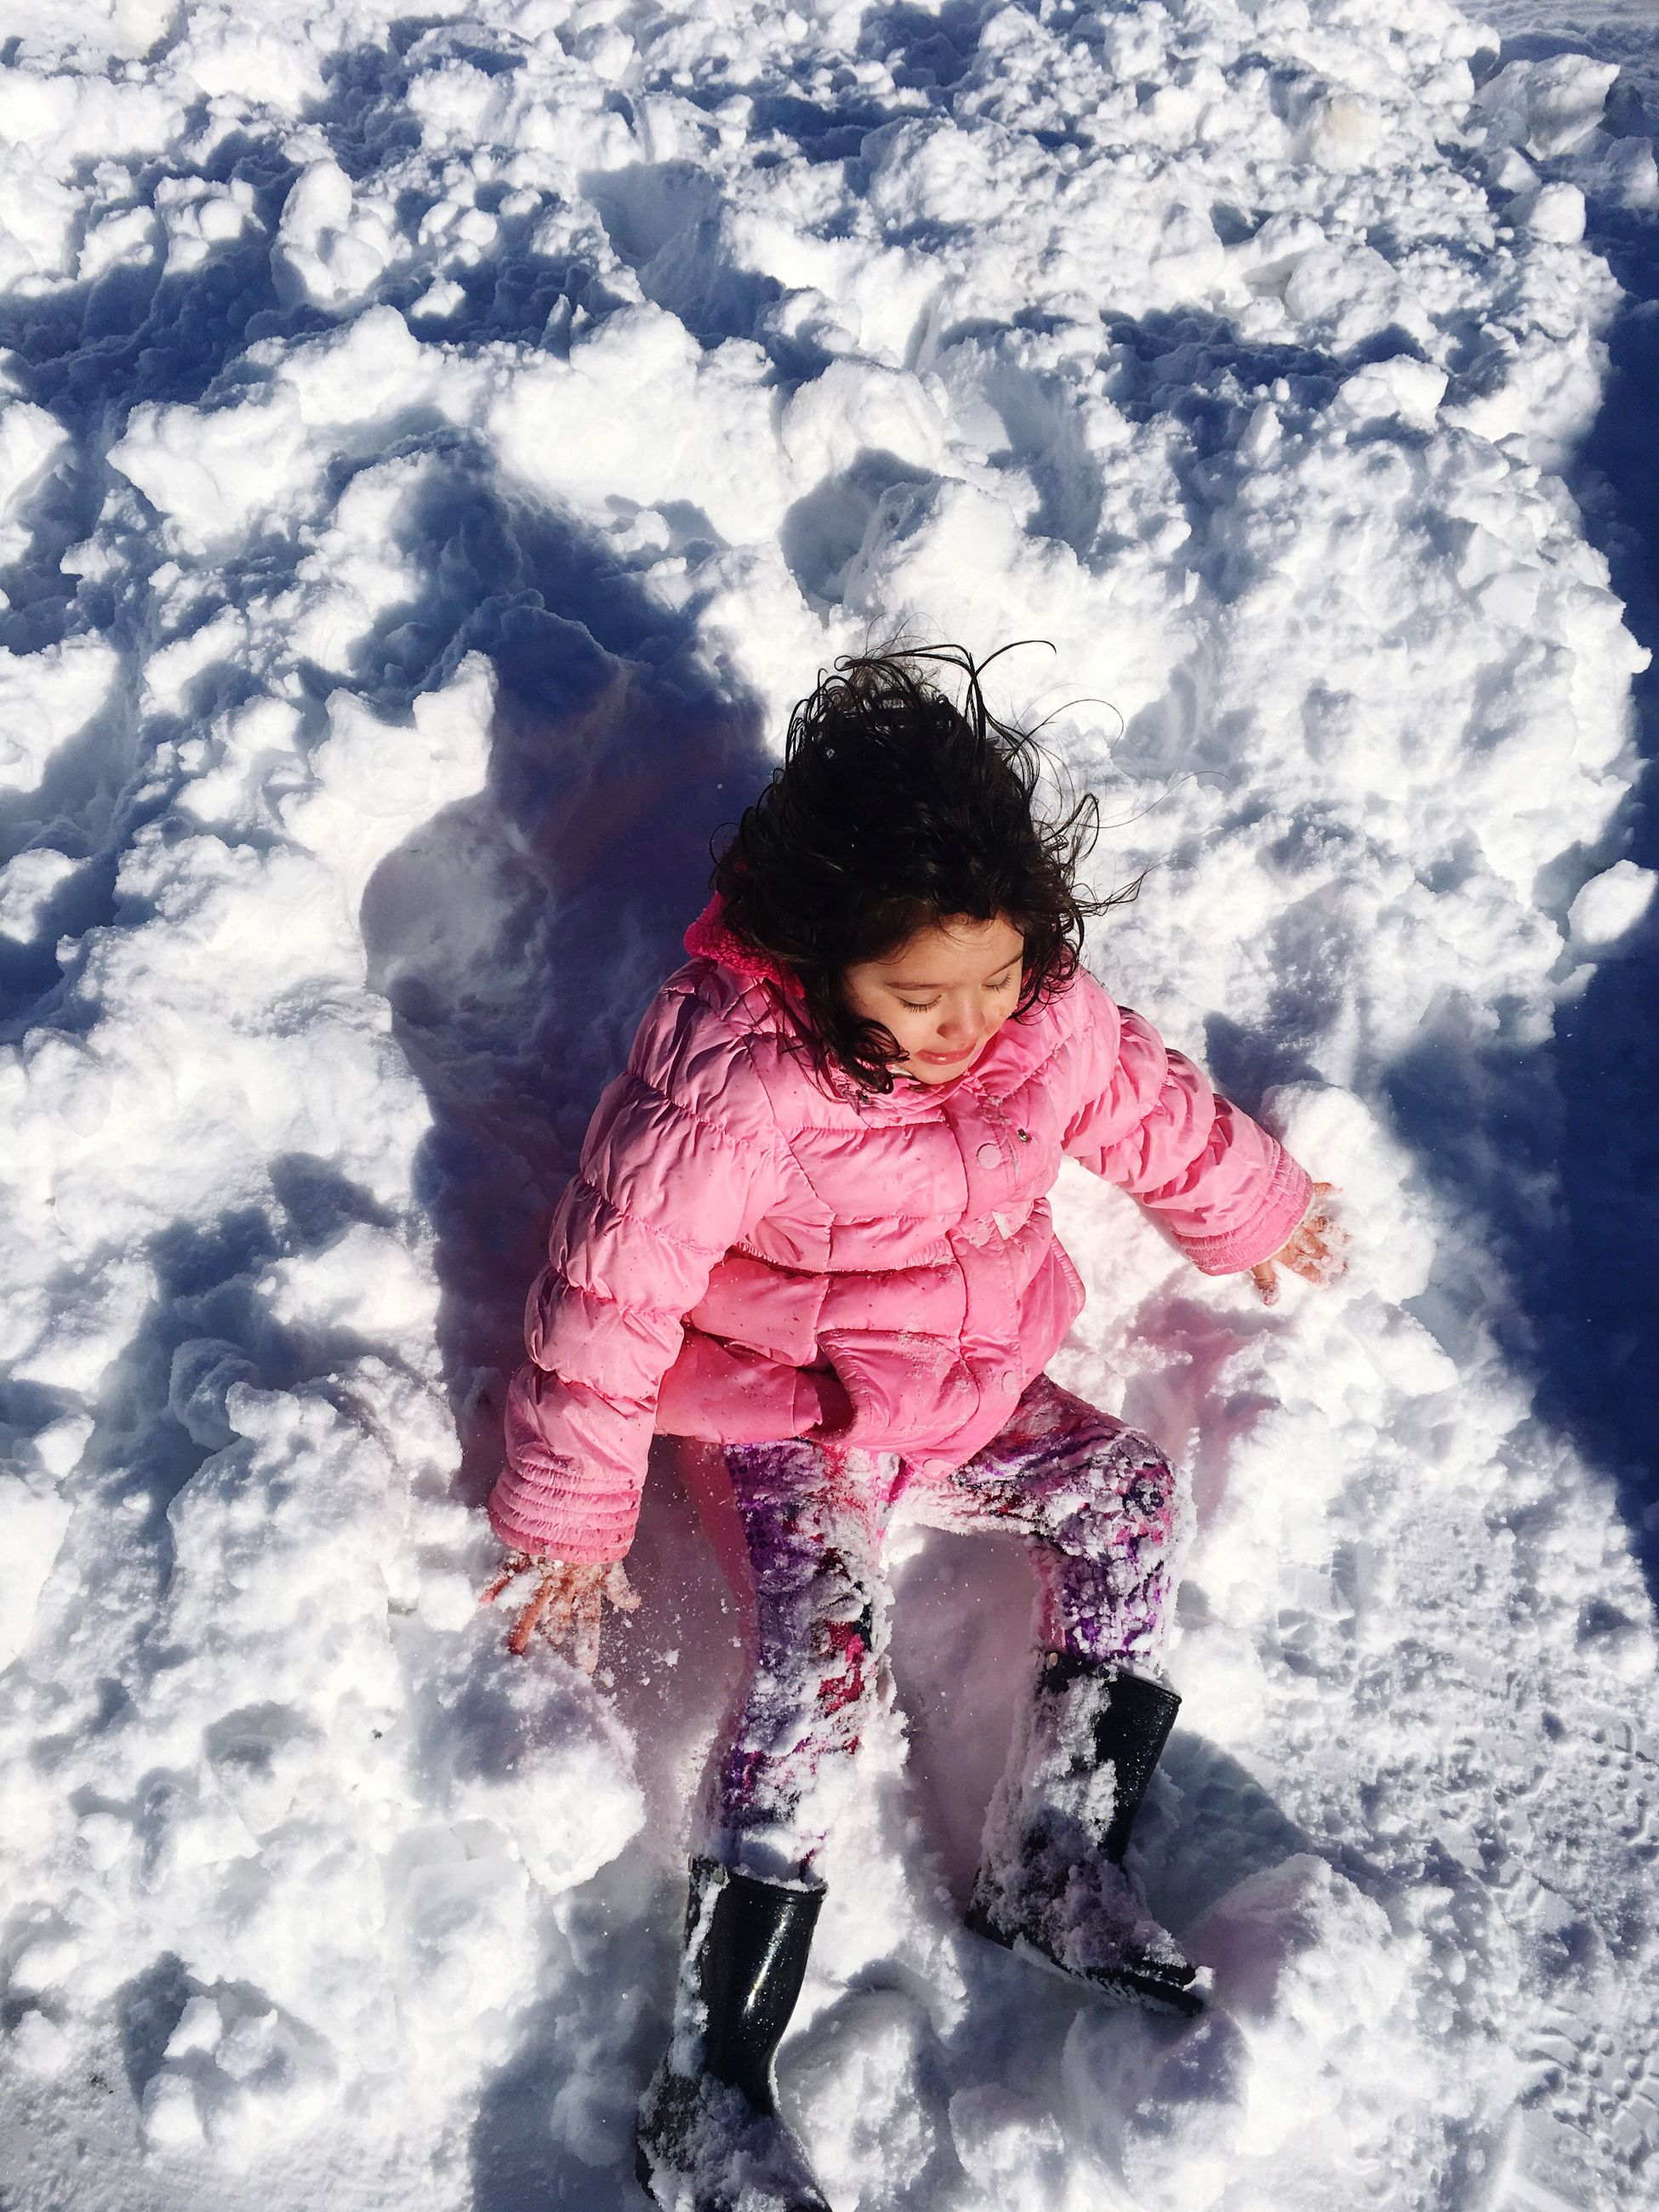 childhood, children only, child, one person, full length, innocence, high angle view, outdoors, looking down, real people, one girl only, people, warm clothing, leisure activity, day, snow, cold temperature, nature